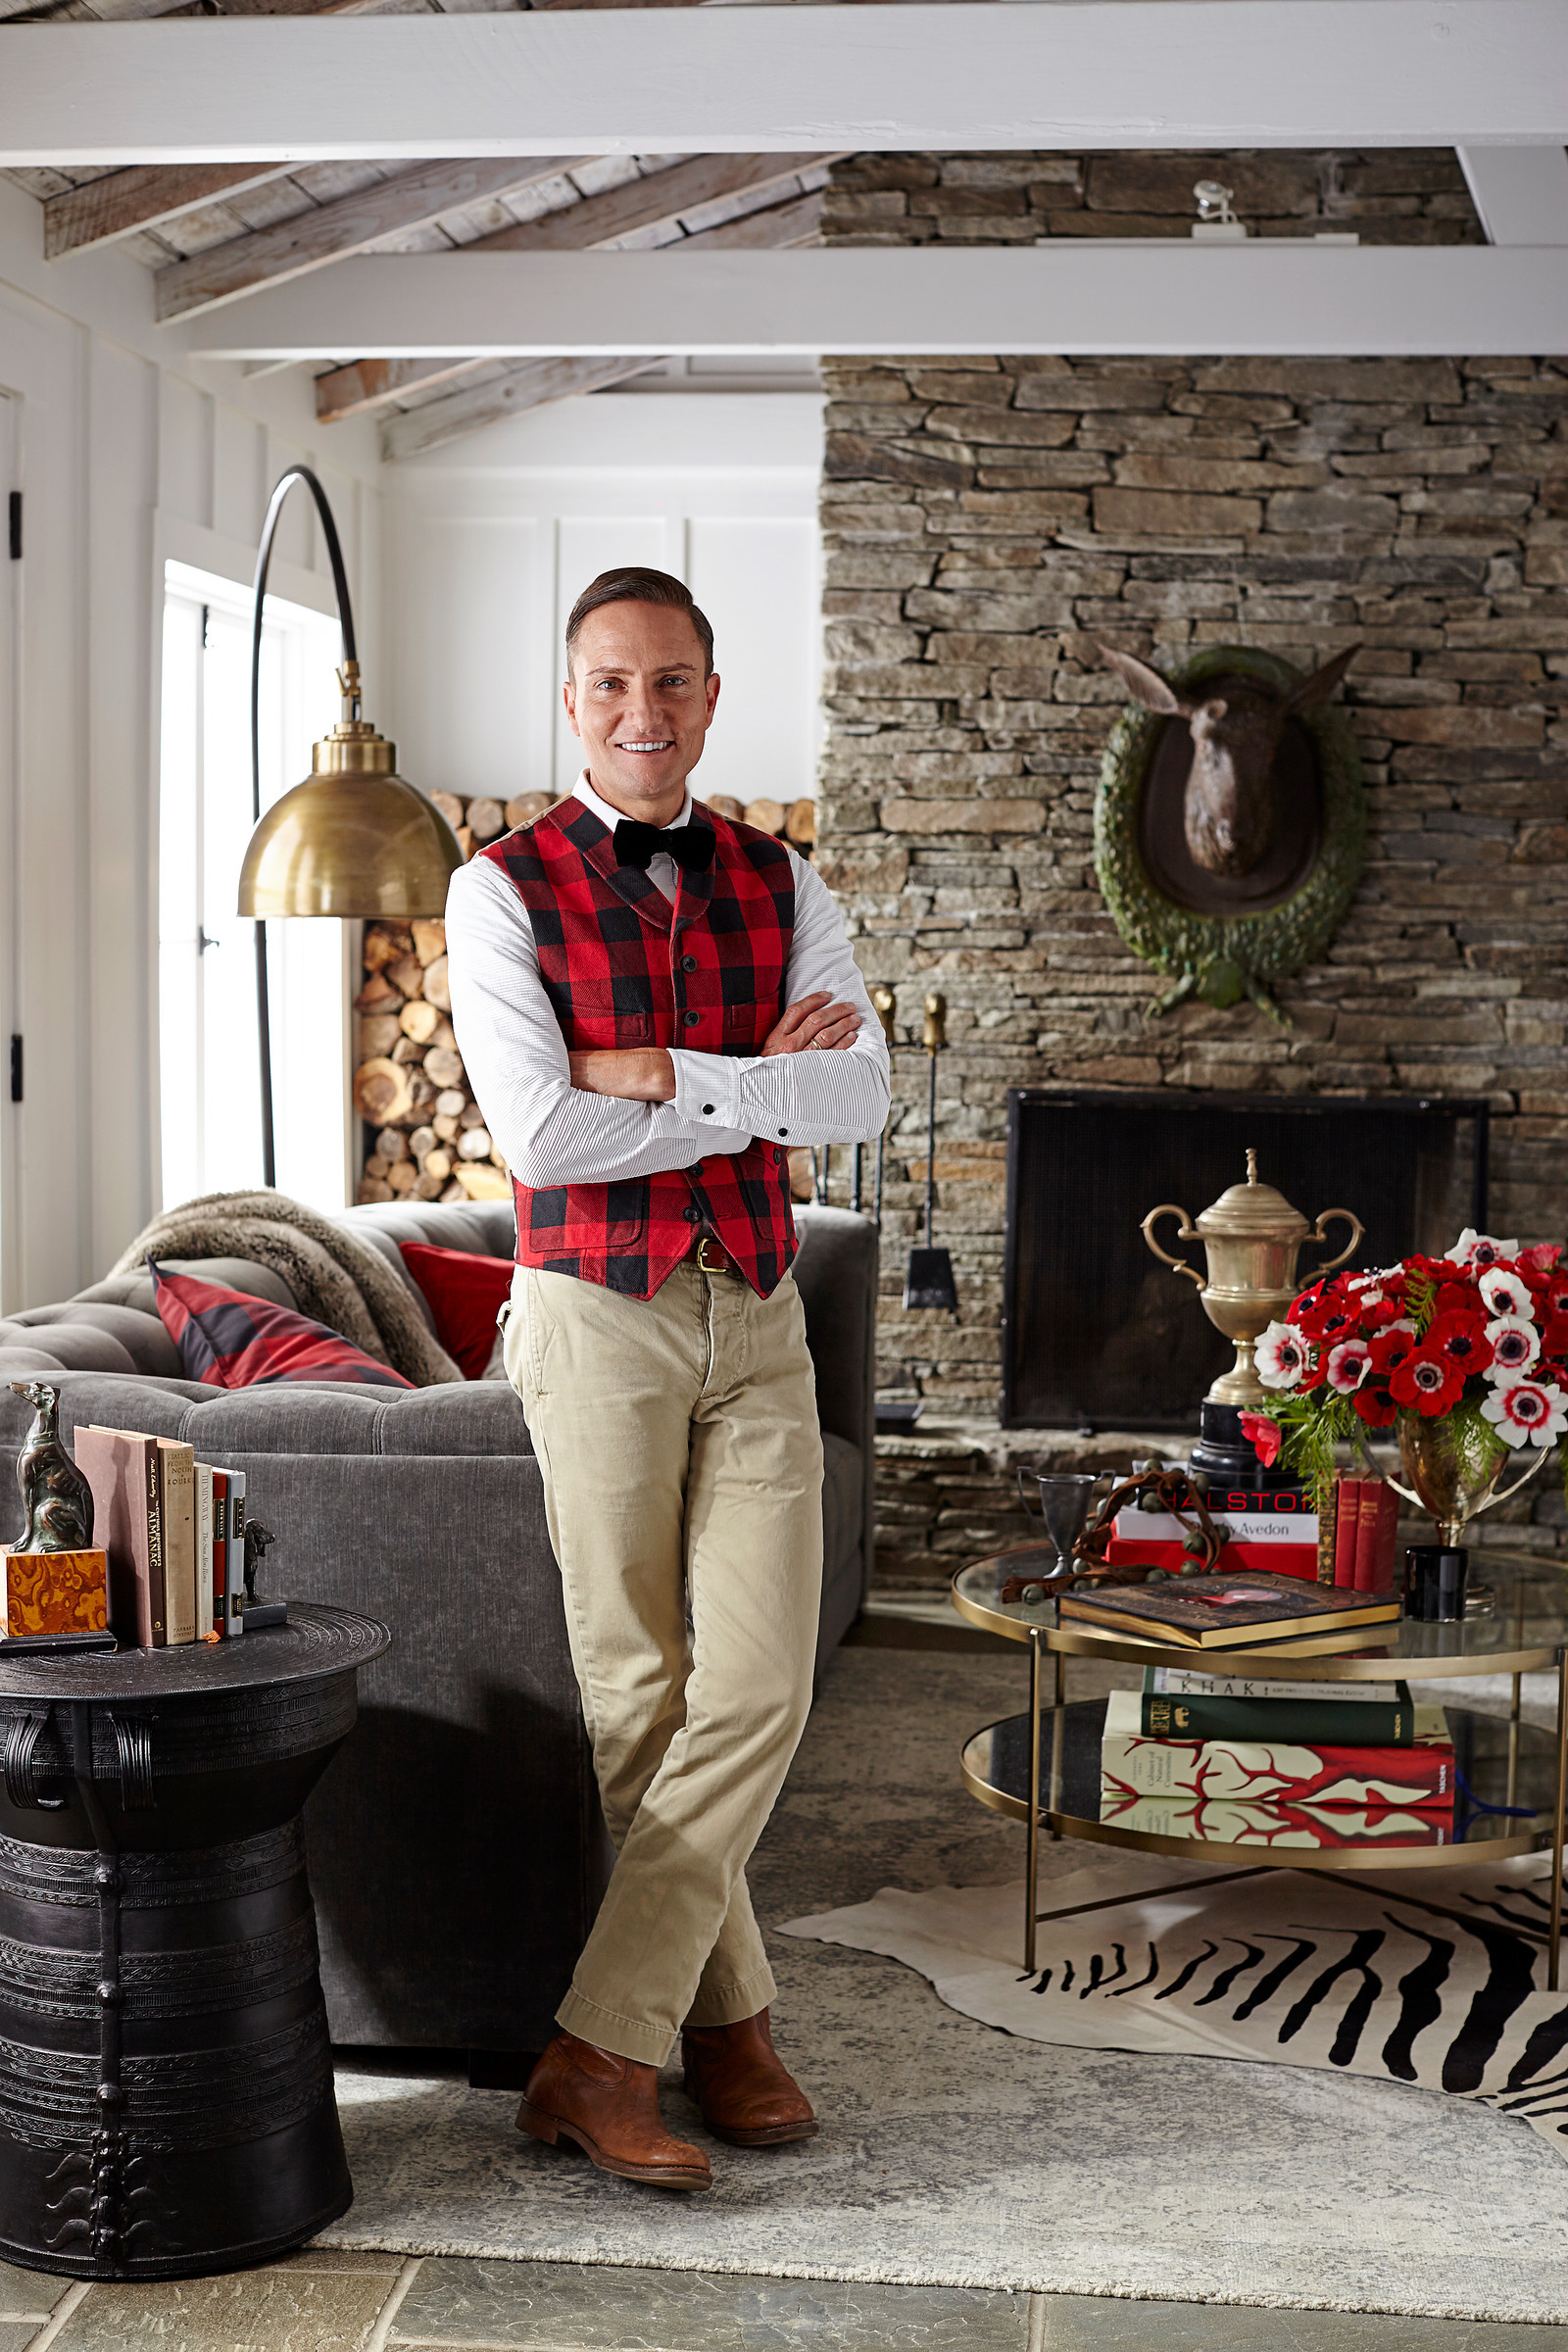 Catchy Author Ken Fulk Business Wire Pottery Barn Announces Book Tour Pottery Barn Announces Book Tour Holiday Product Collaboration Withdesigner Holiday Product Collaboration baby Pottery Barn Nyc